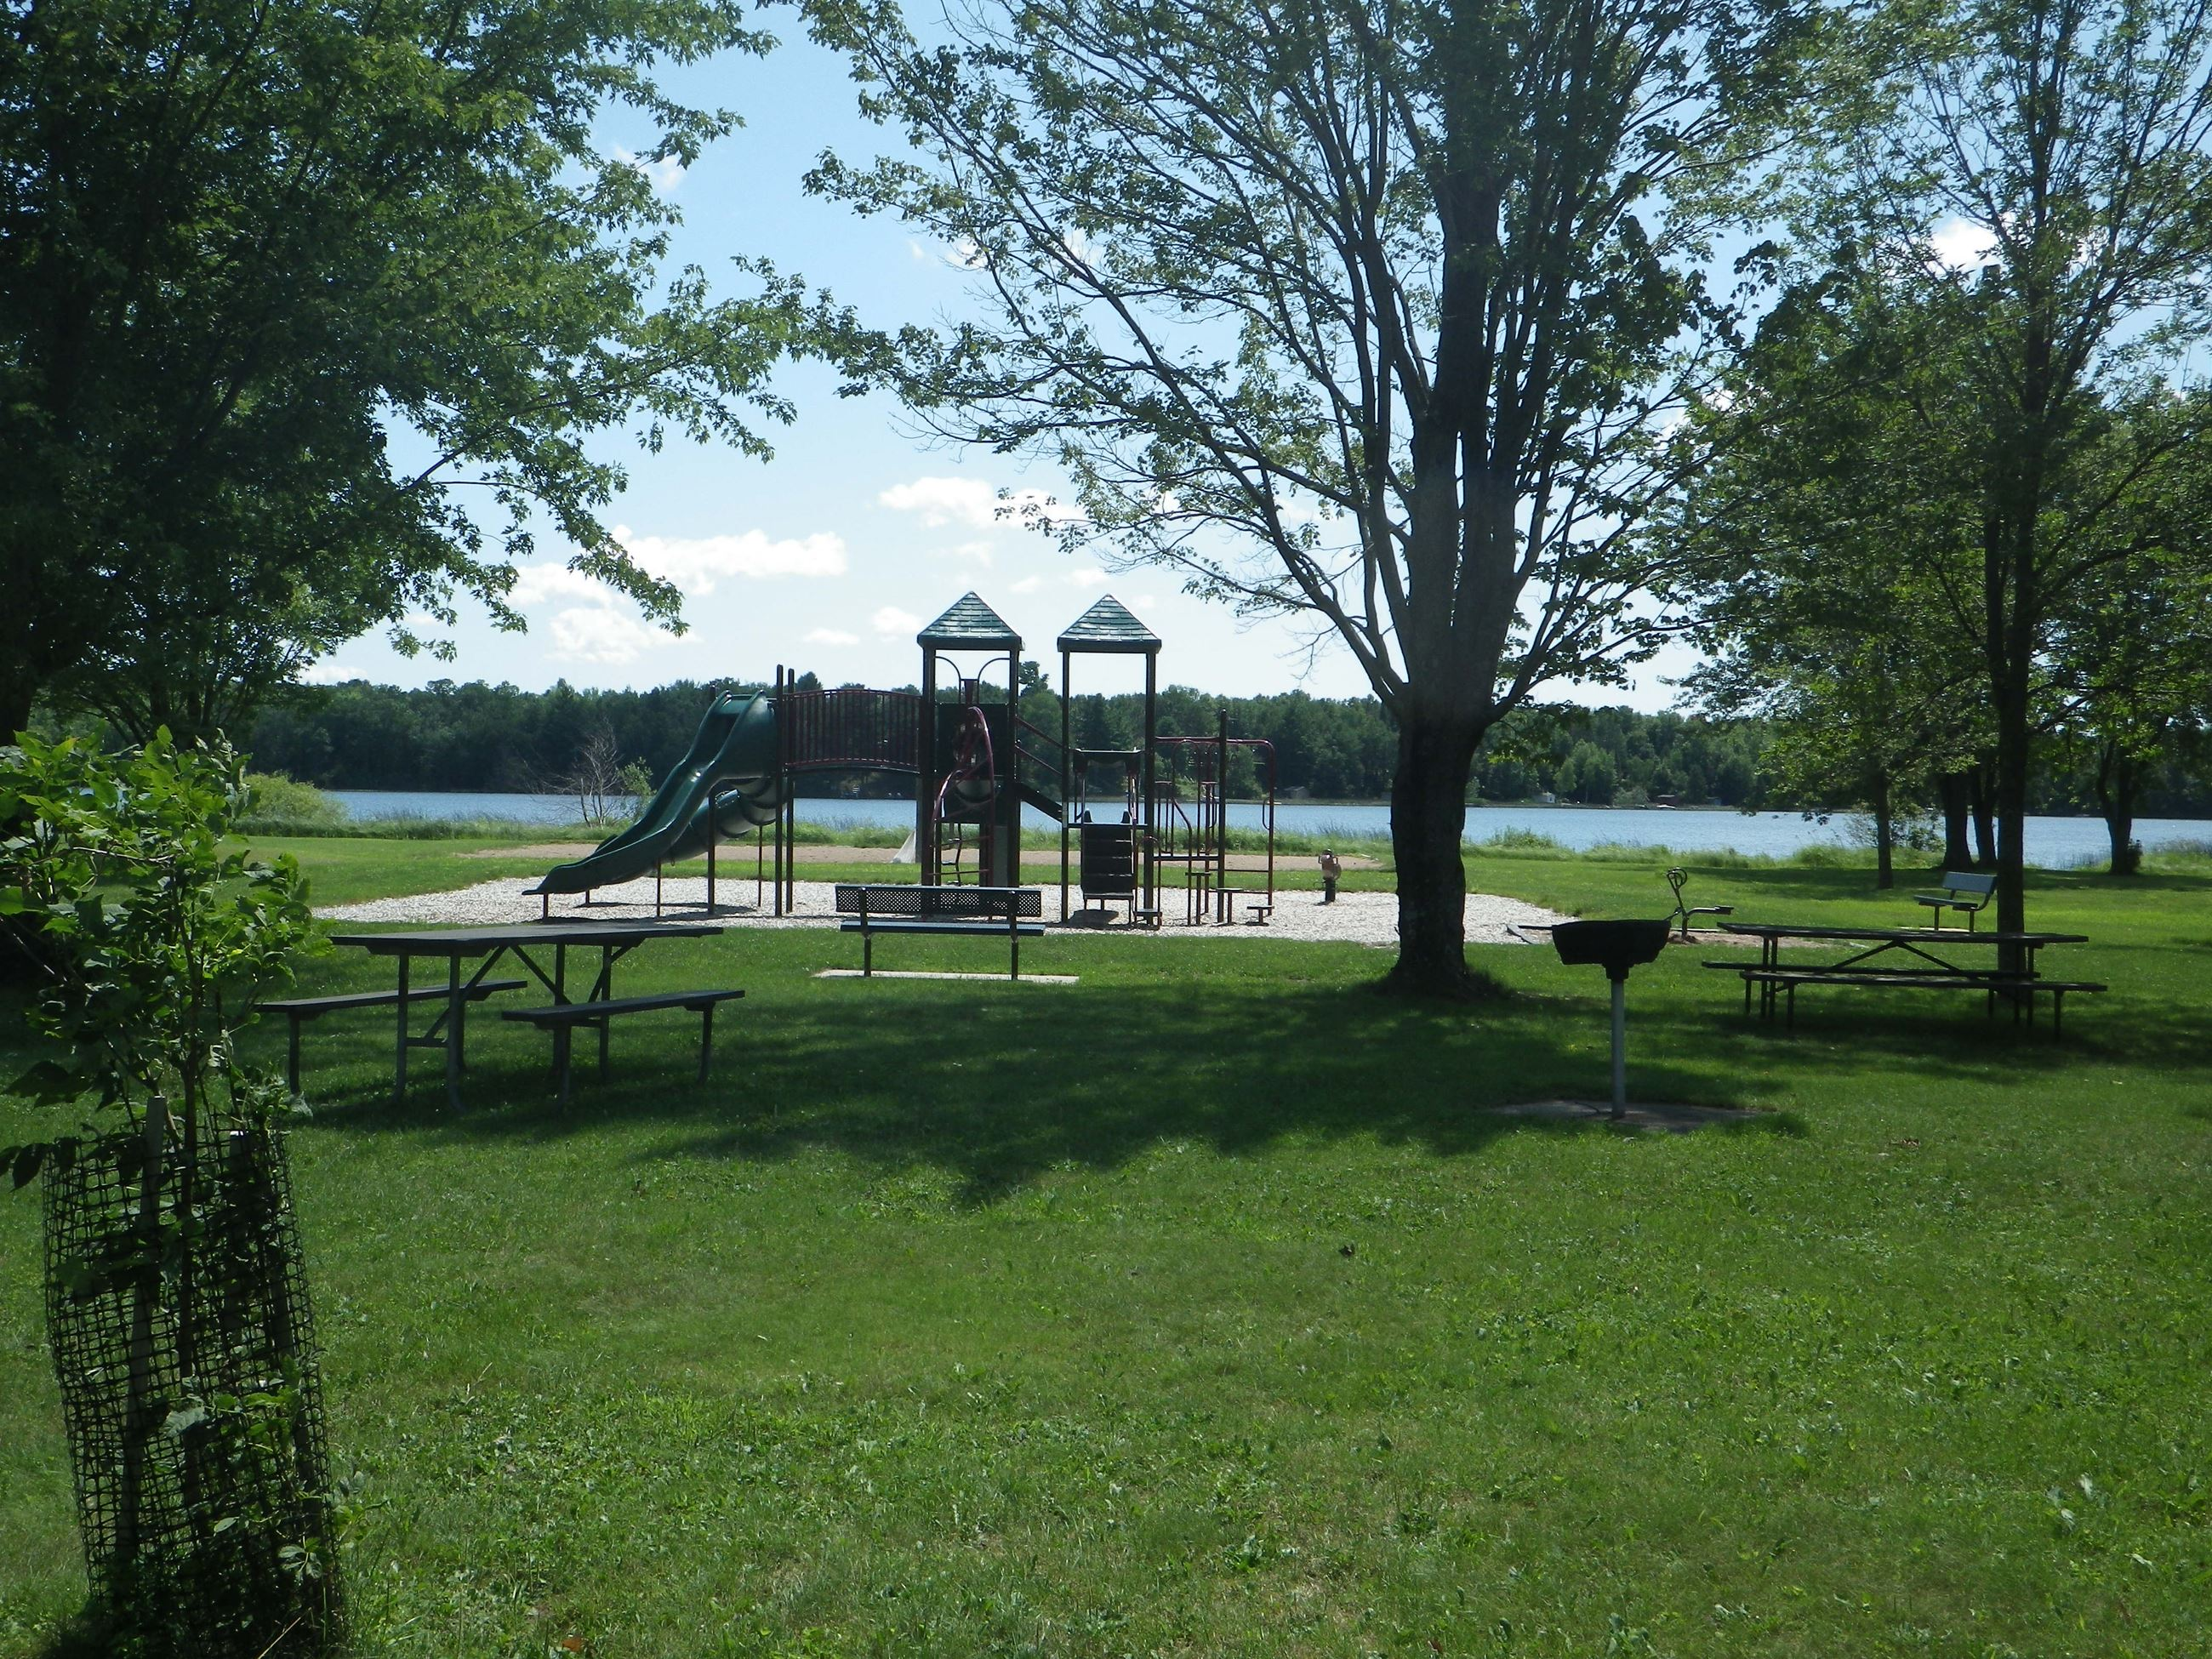 Conners Lake Picnic Area - Playgrd  Equip 2